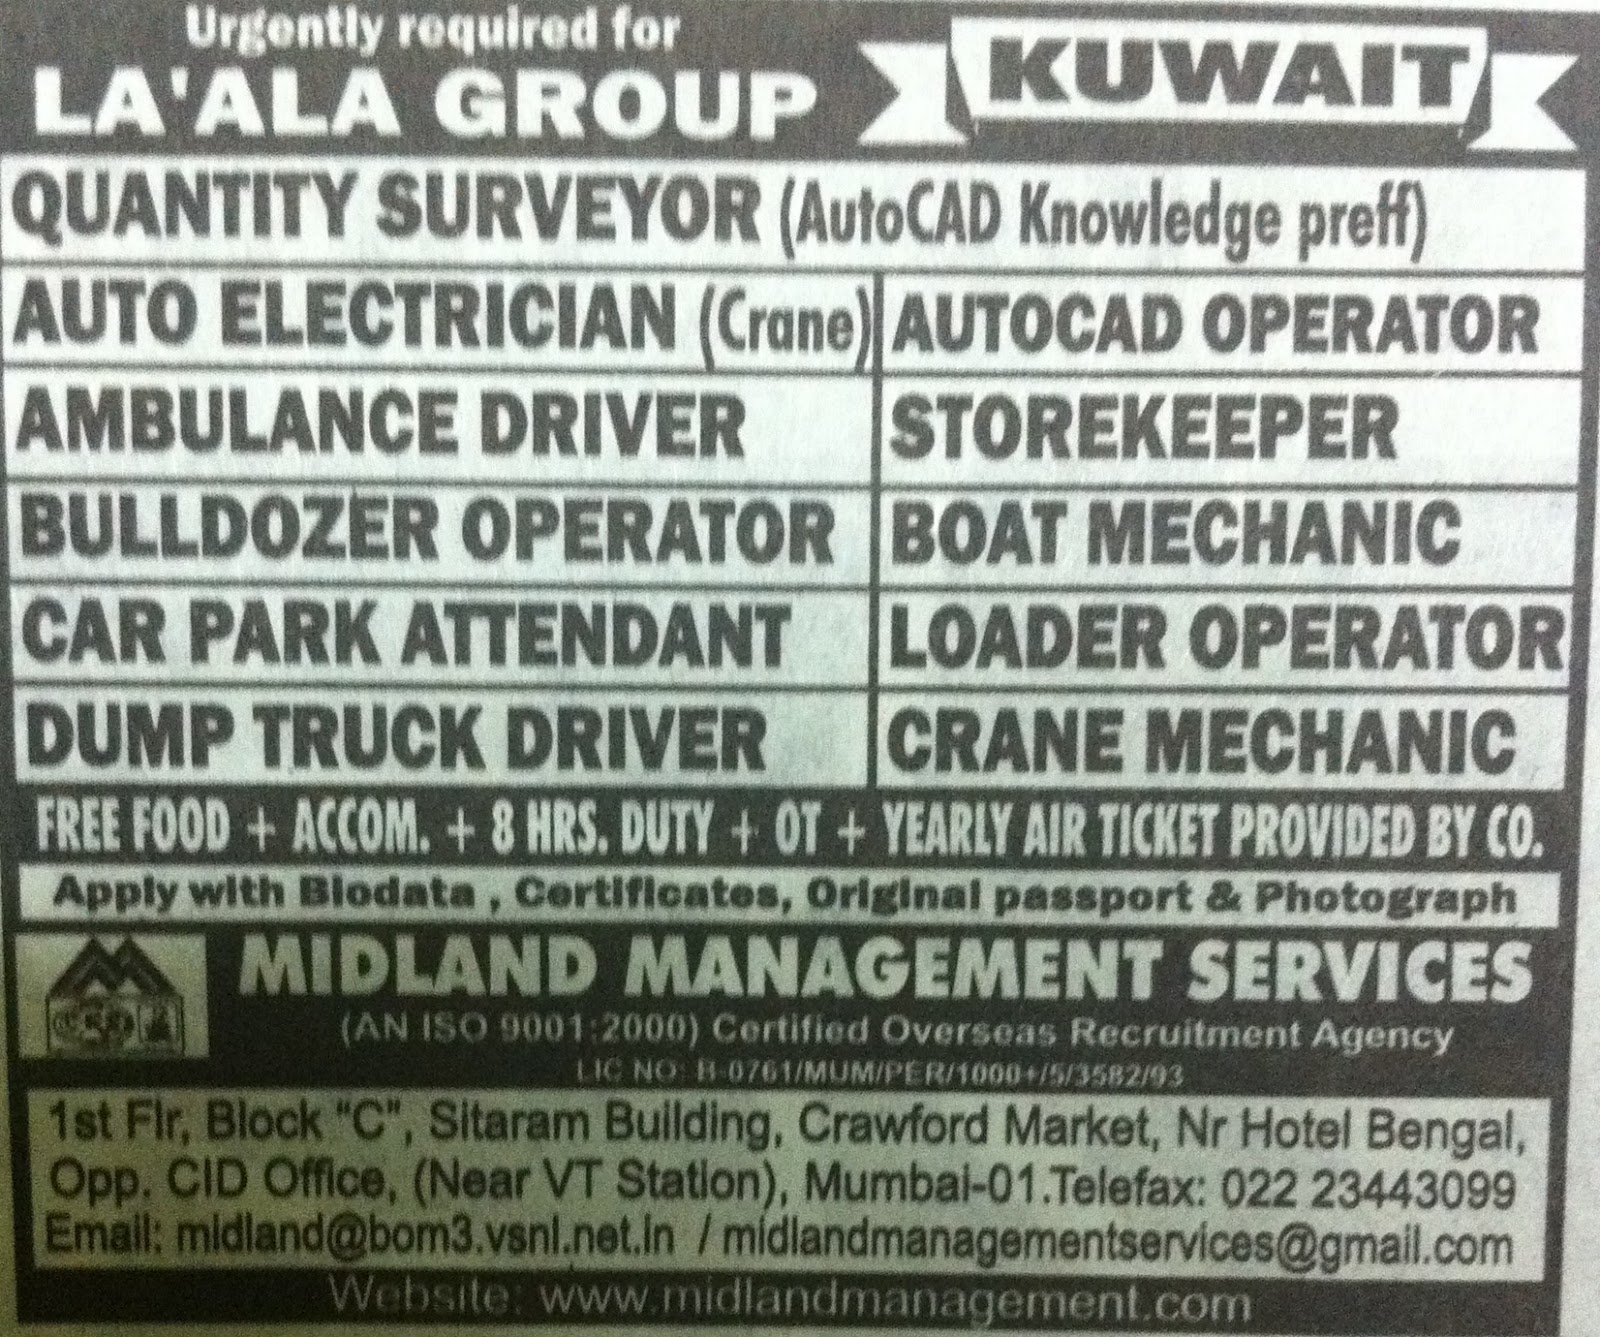 Gulf jobs for indians: KUWAIT jobs for QUANTITY surveyor